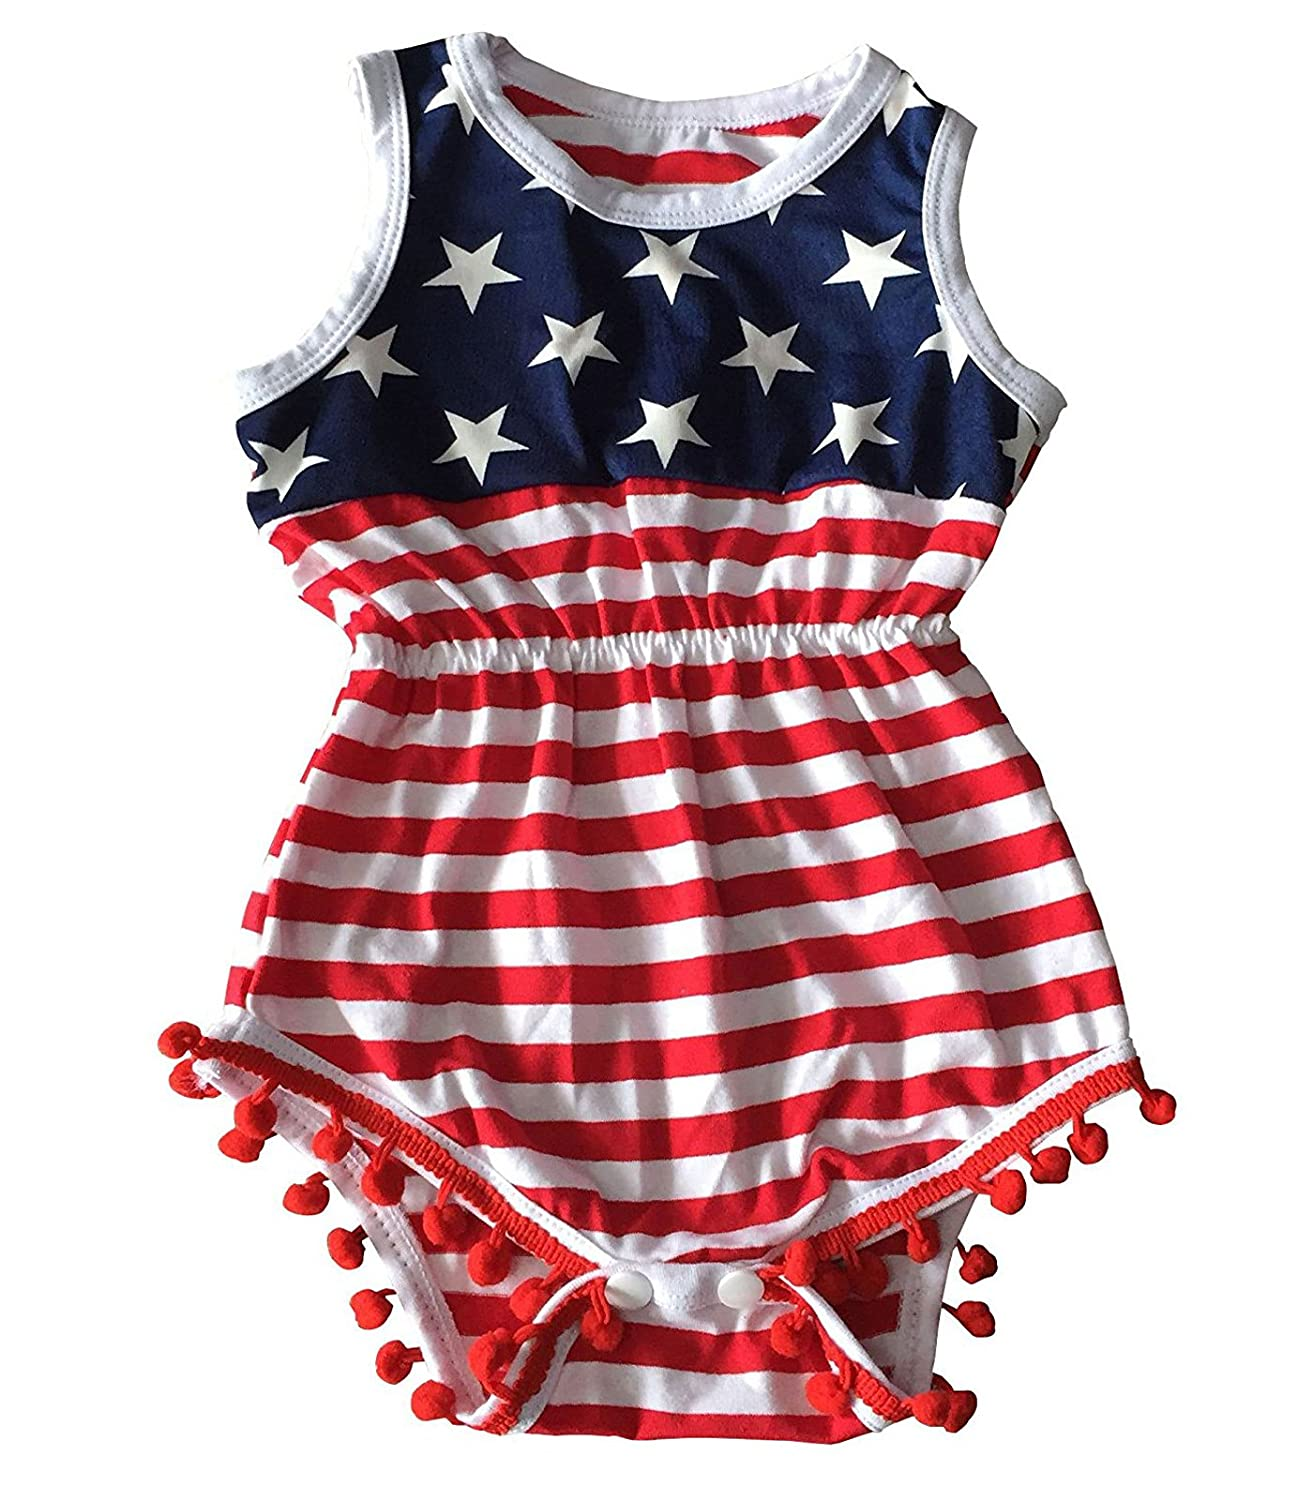 AMOUR TIME 4th Of July Romper Toddler Baby Girls American Flag Tassel Outfits With Headband